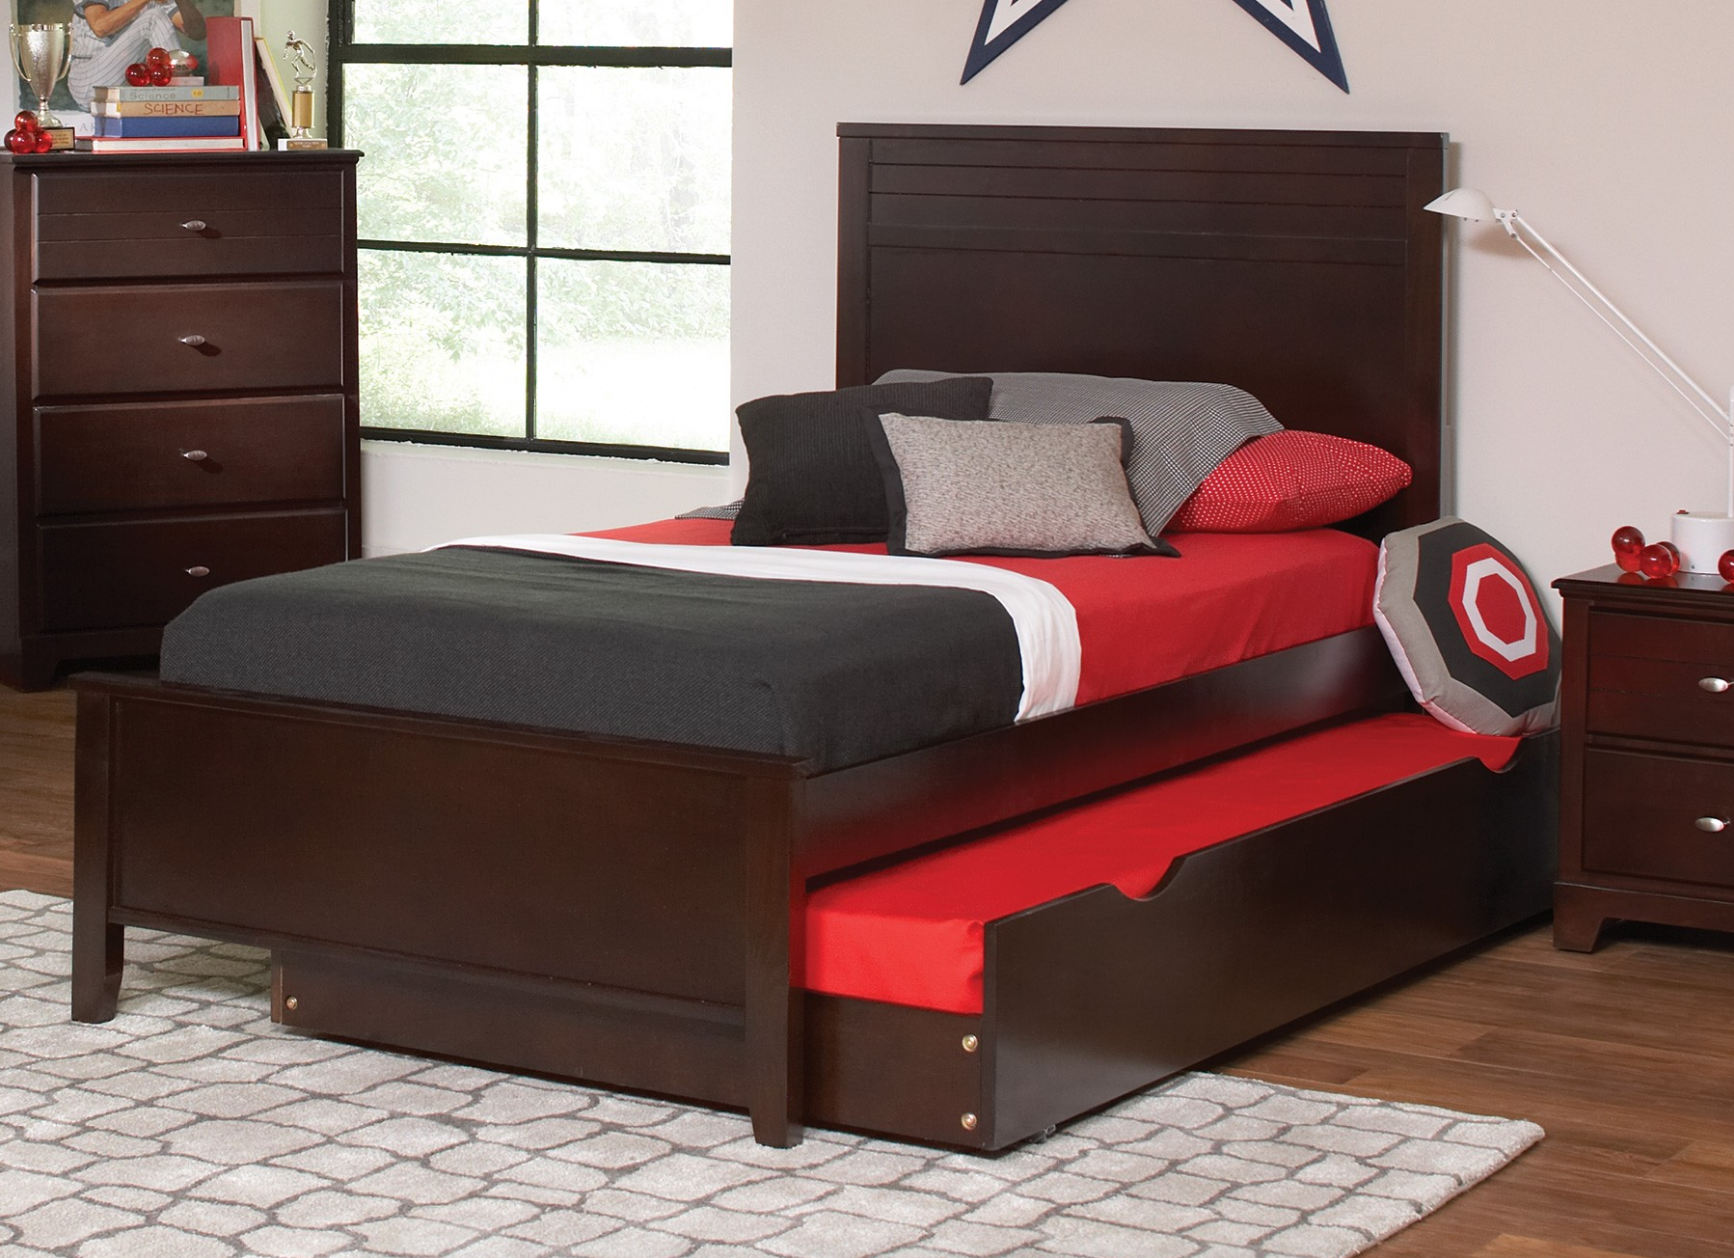 Bayside Panel Bed Kids Furniture In Los Angeles